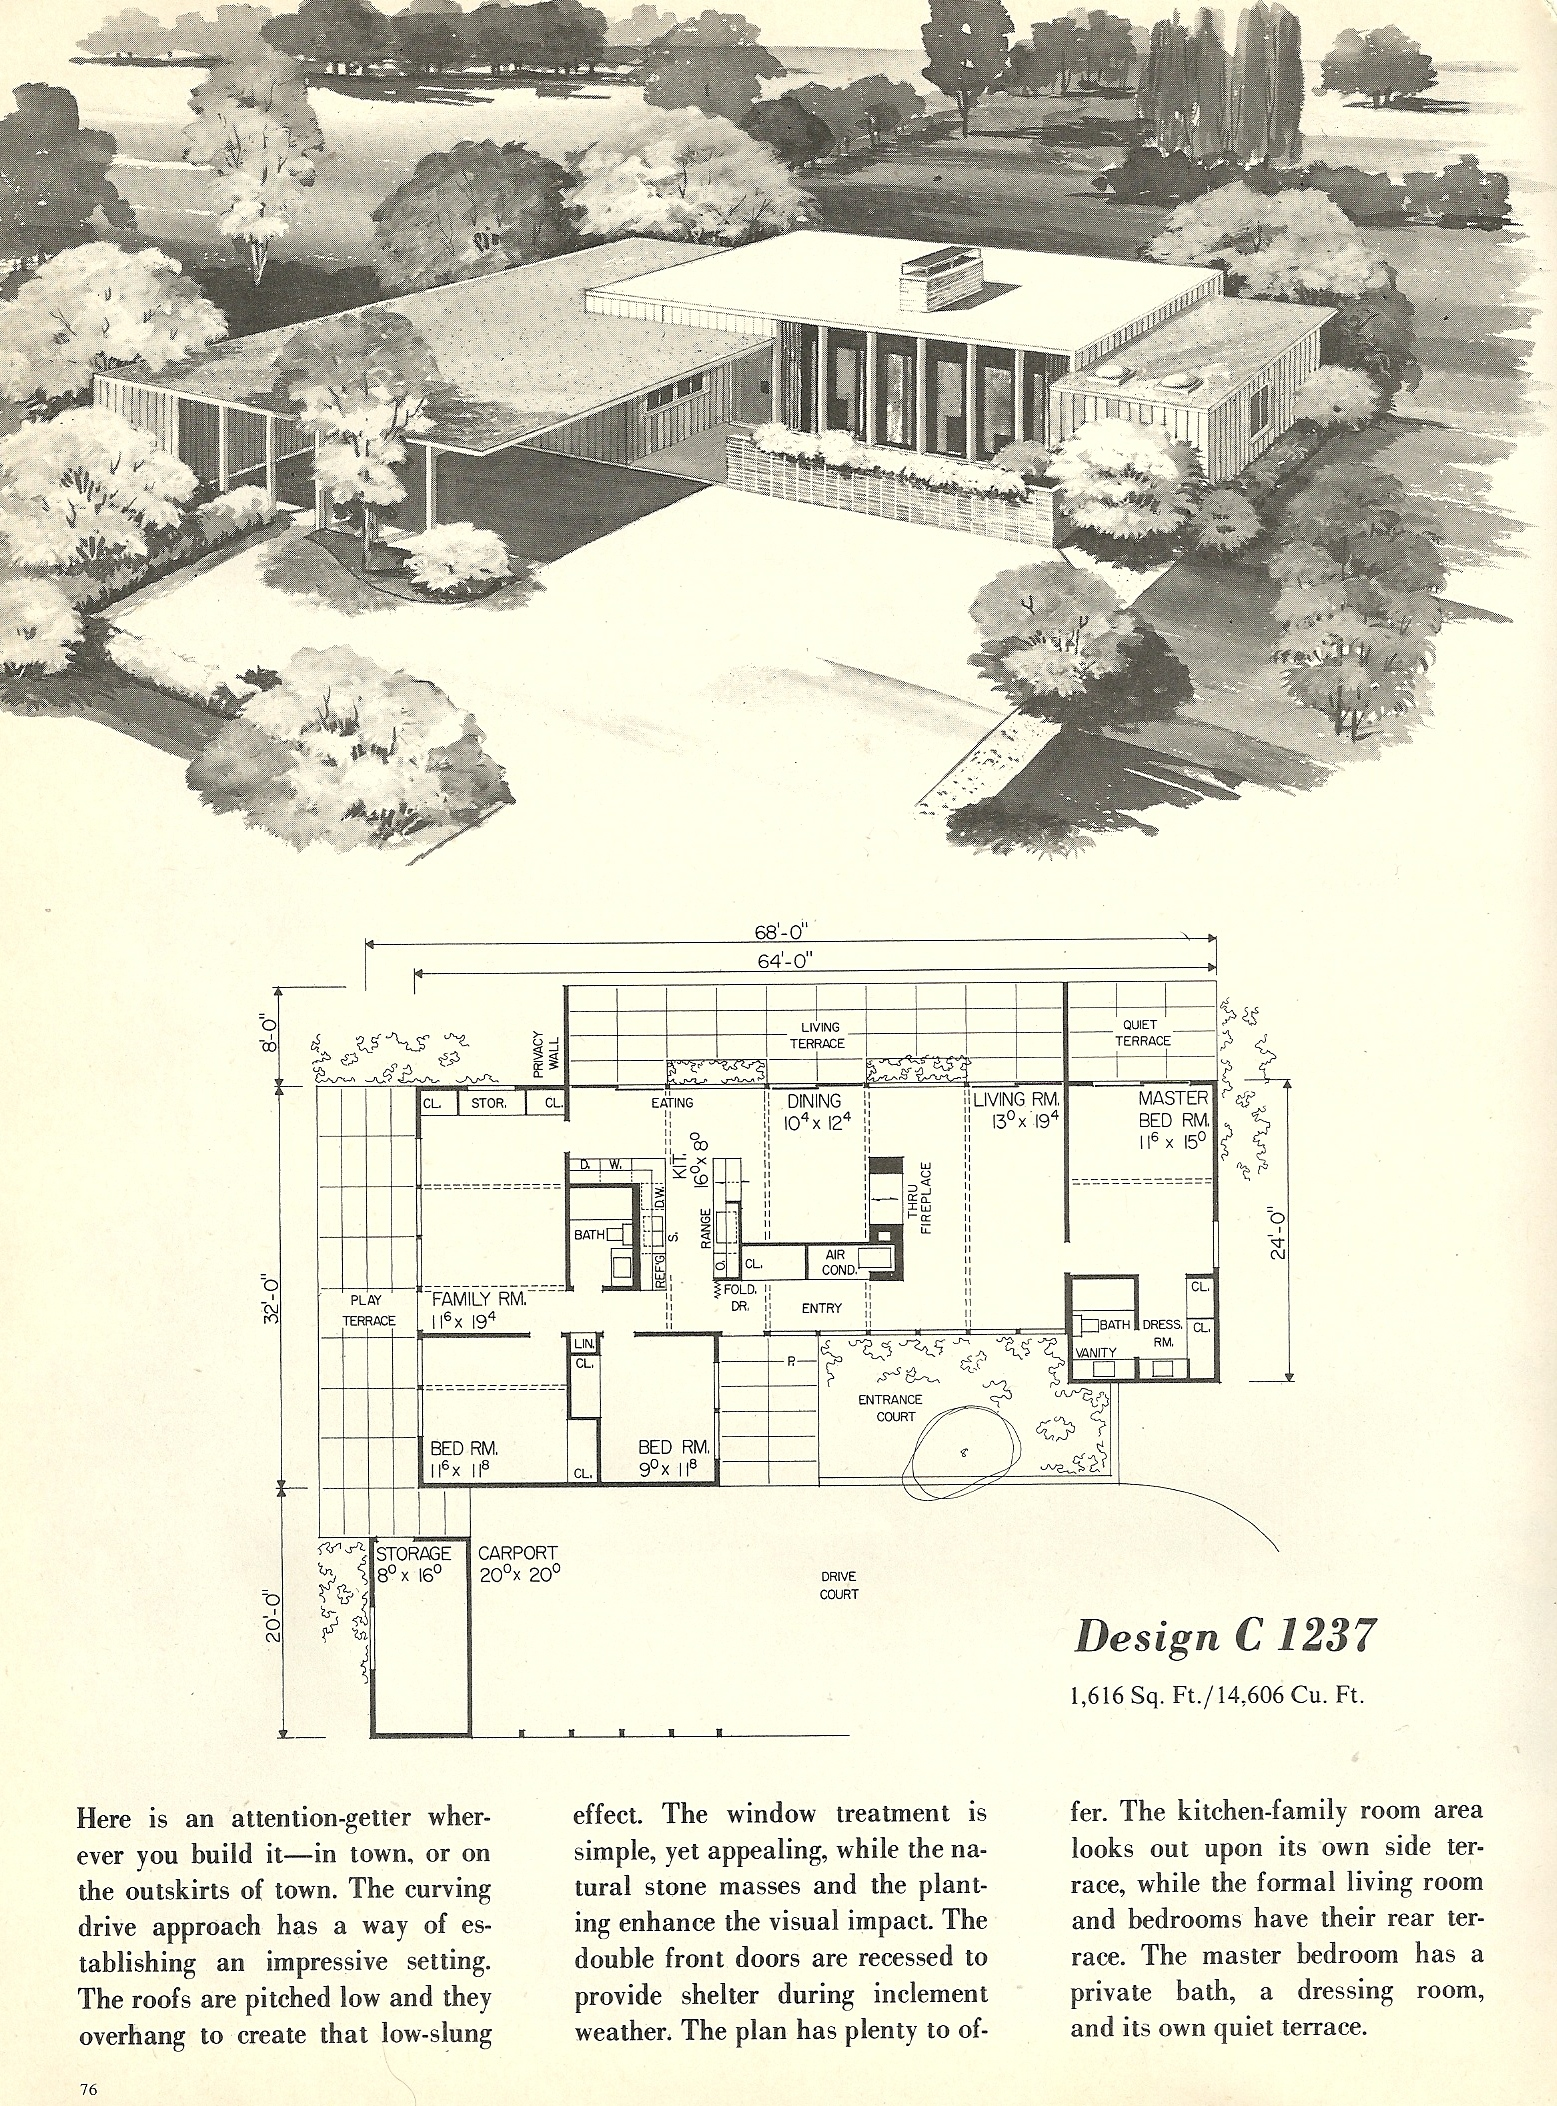 Vintage house plans 1237 antique alter ego for Mid century home plans